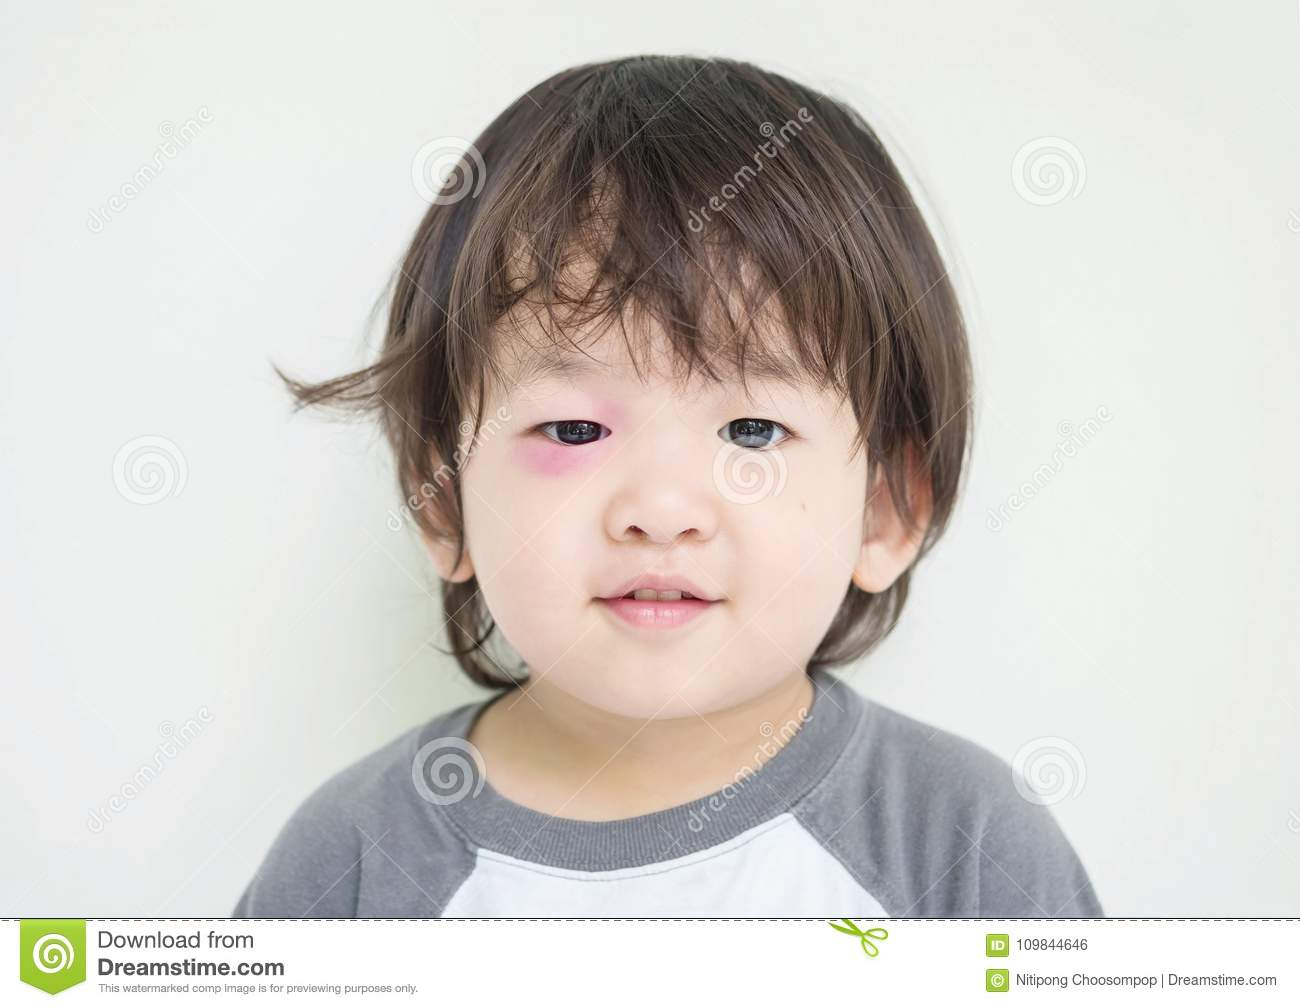 Closeup swollen eye of kid from insect bite with red bruise but he can smile